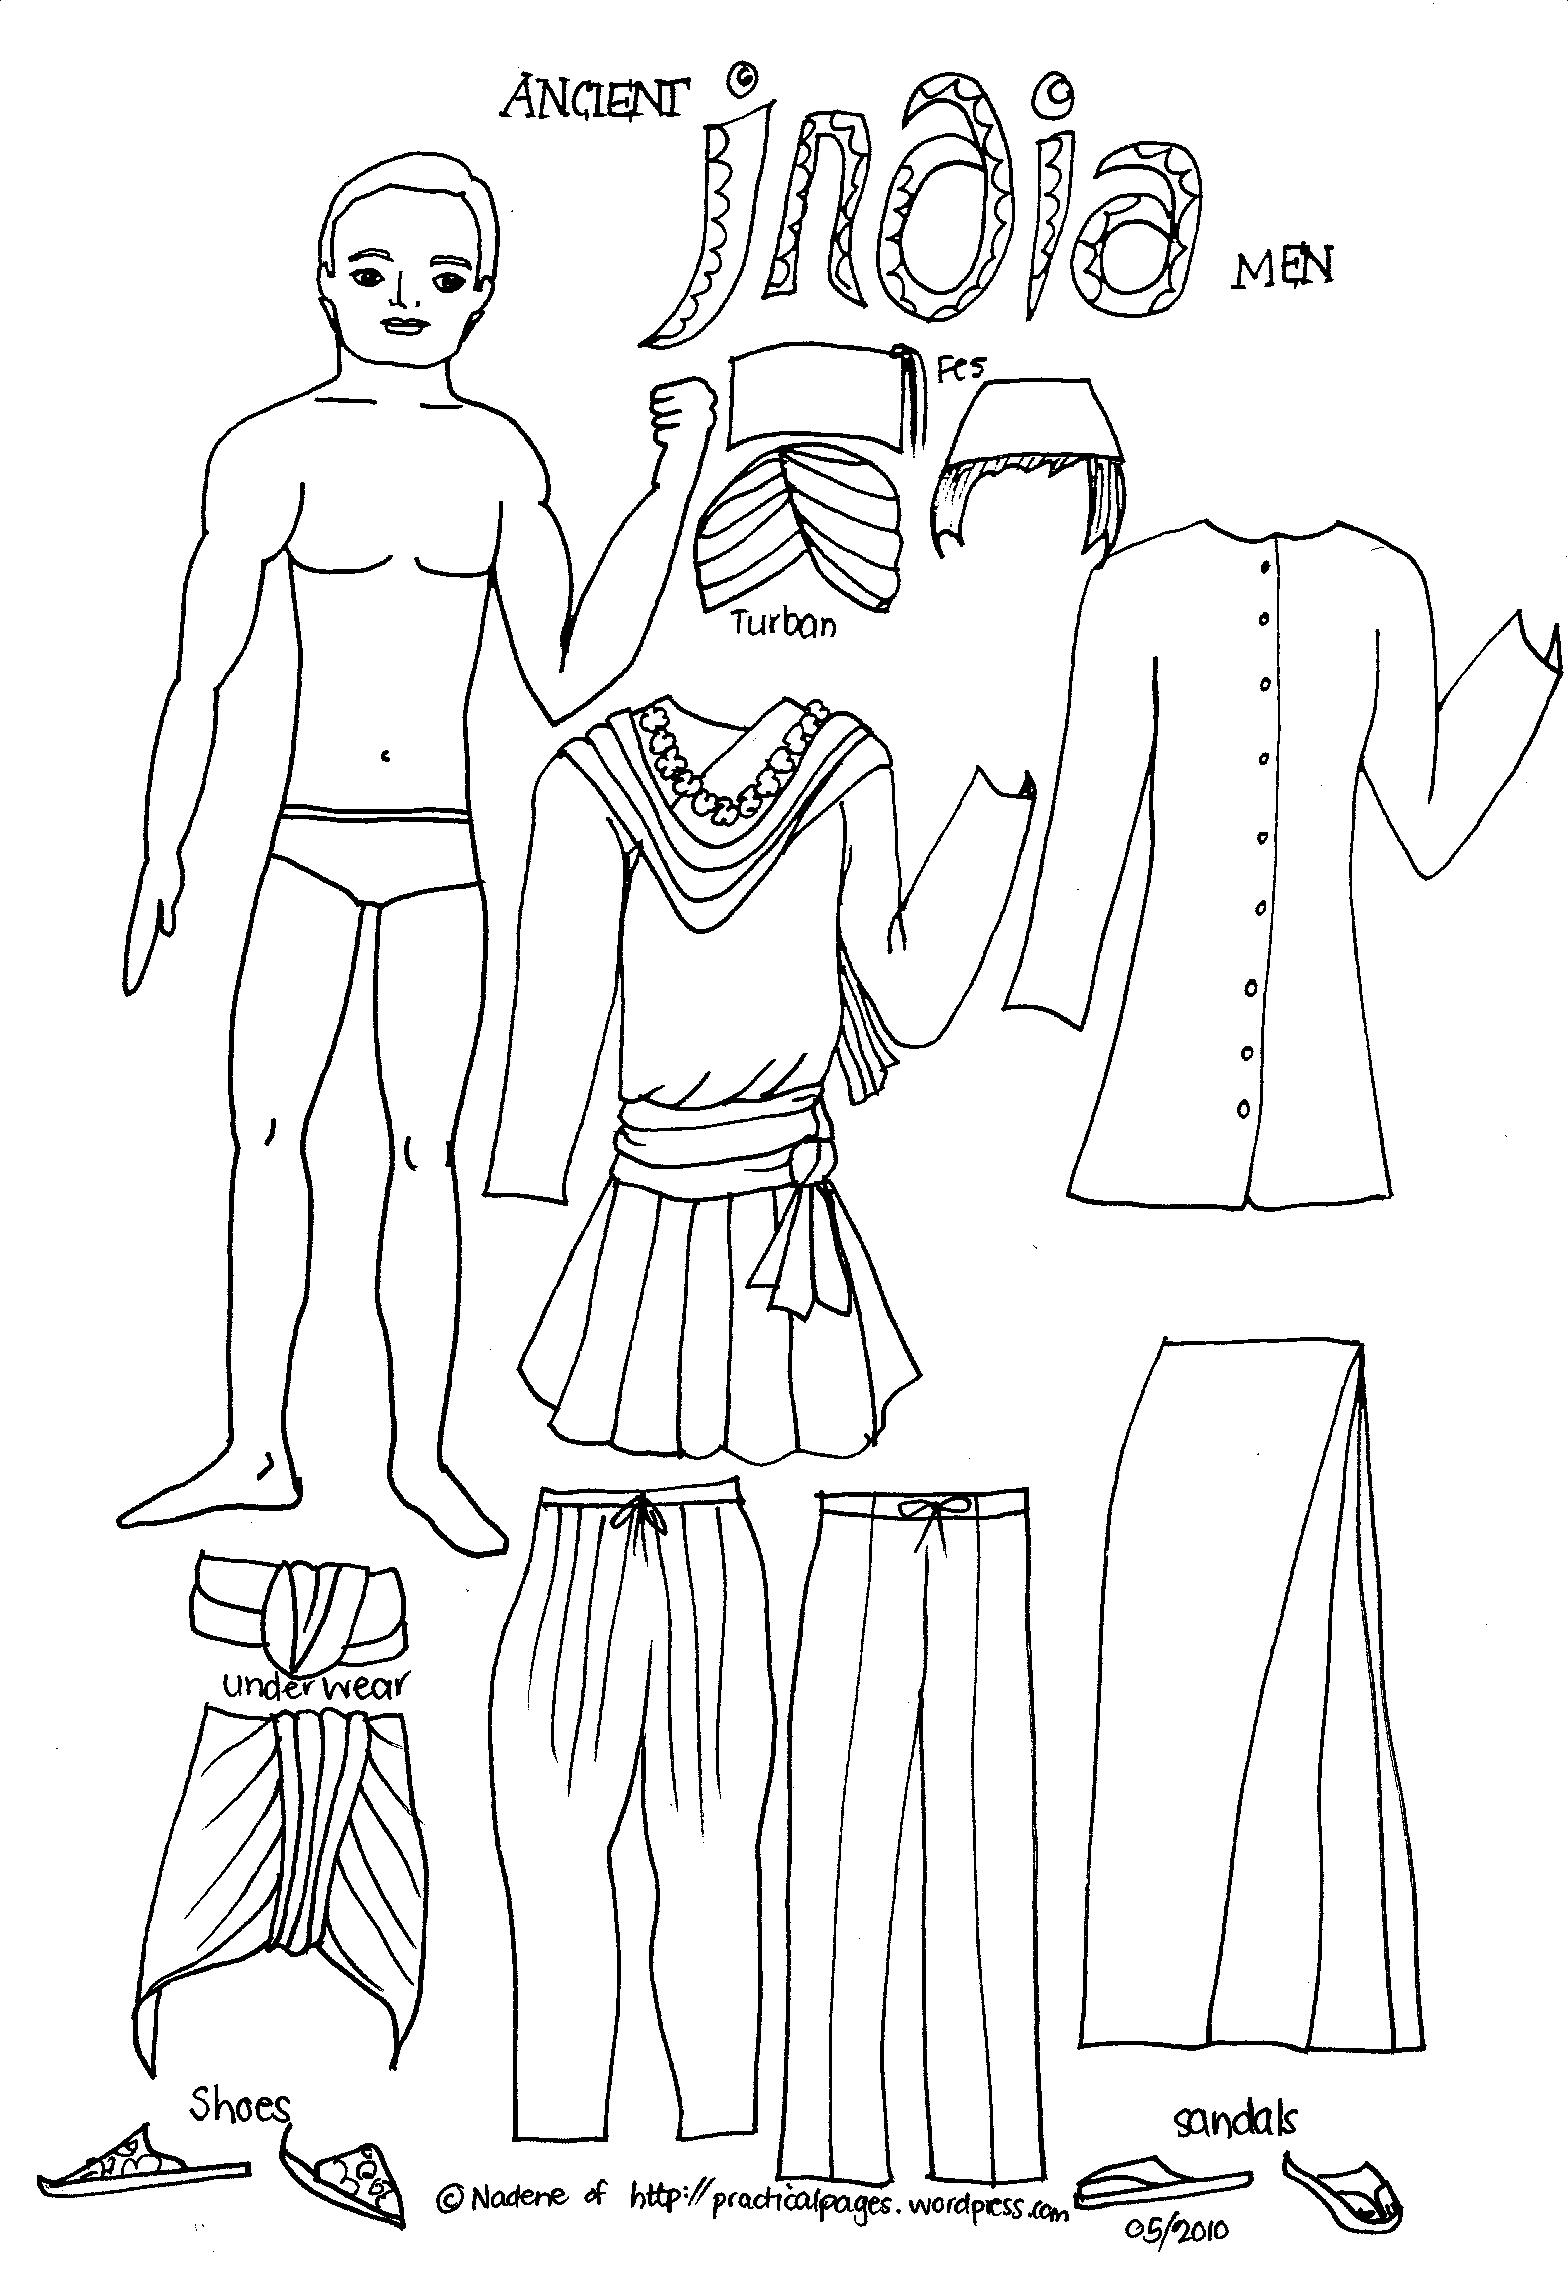 Ancient egypt paper dolls coloring pages ancient egypt for Ancient india coloring pages